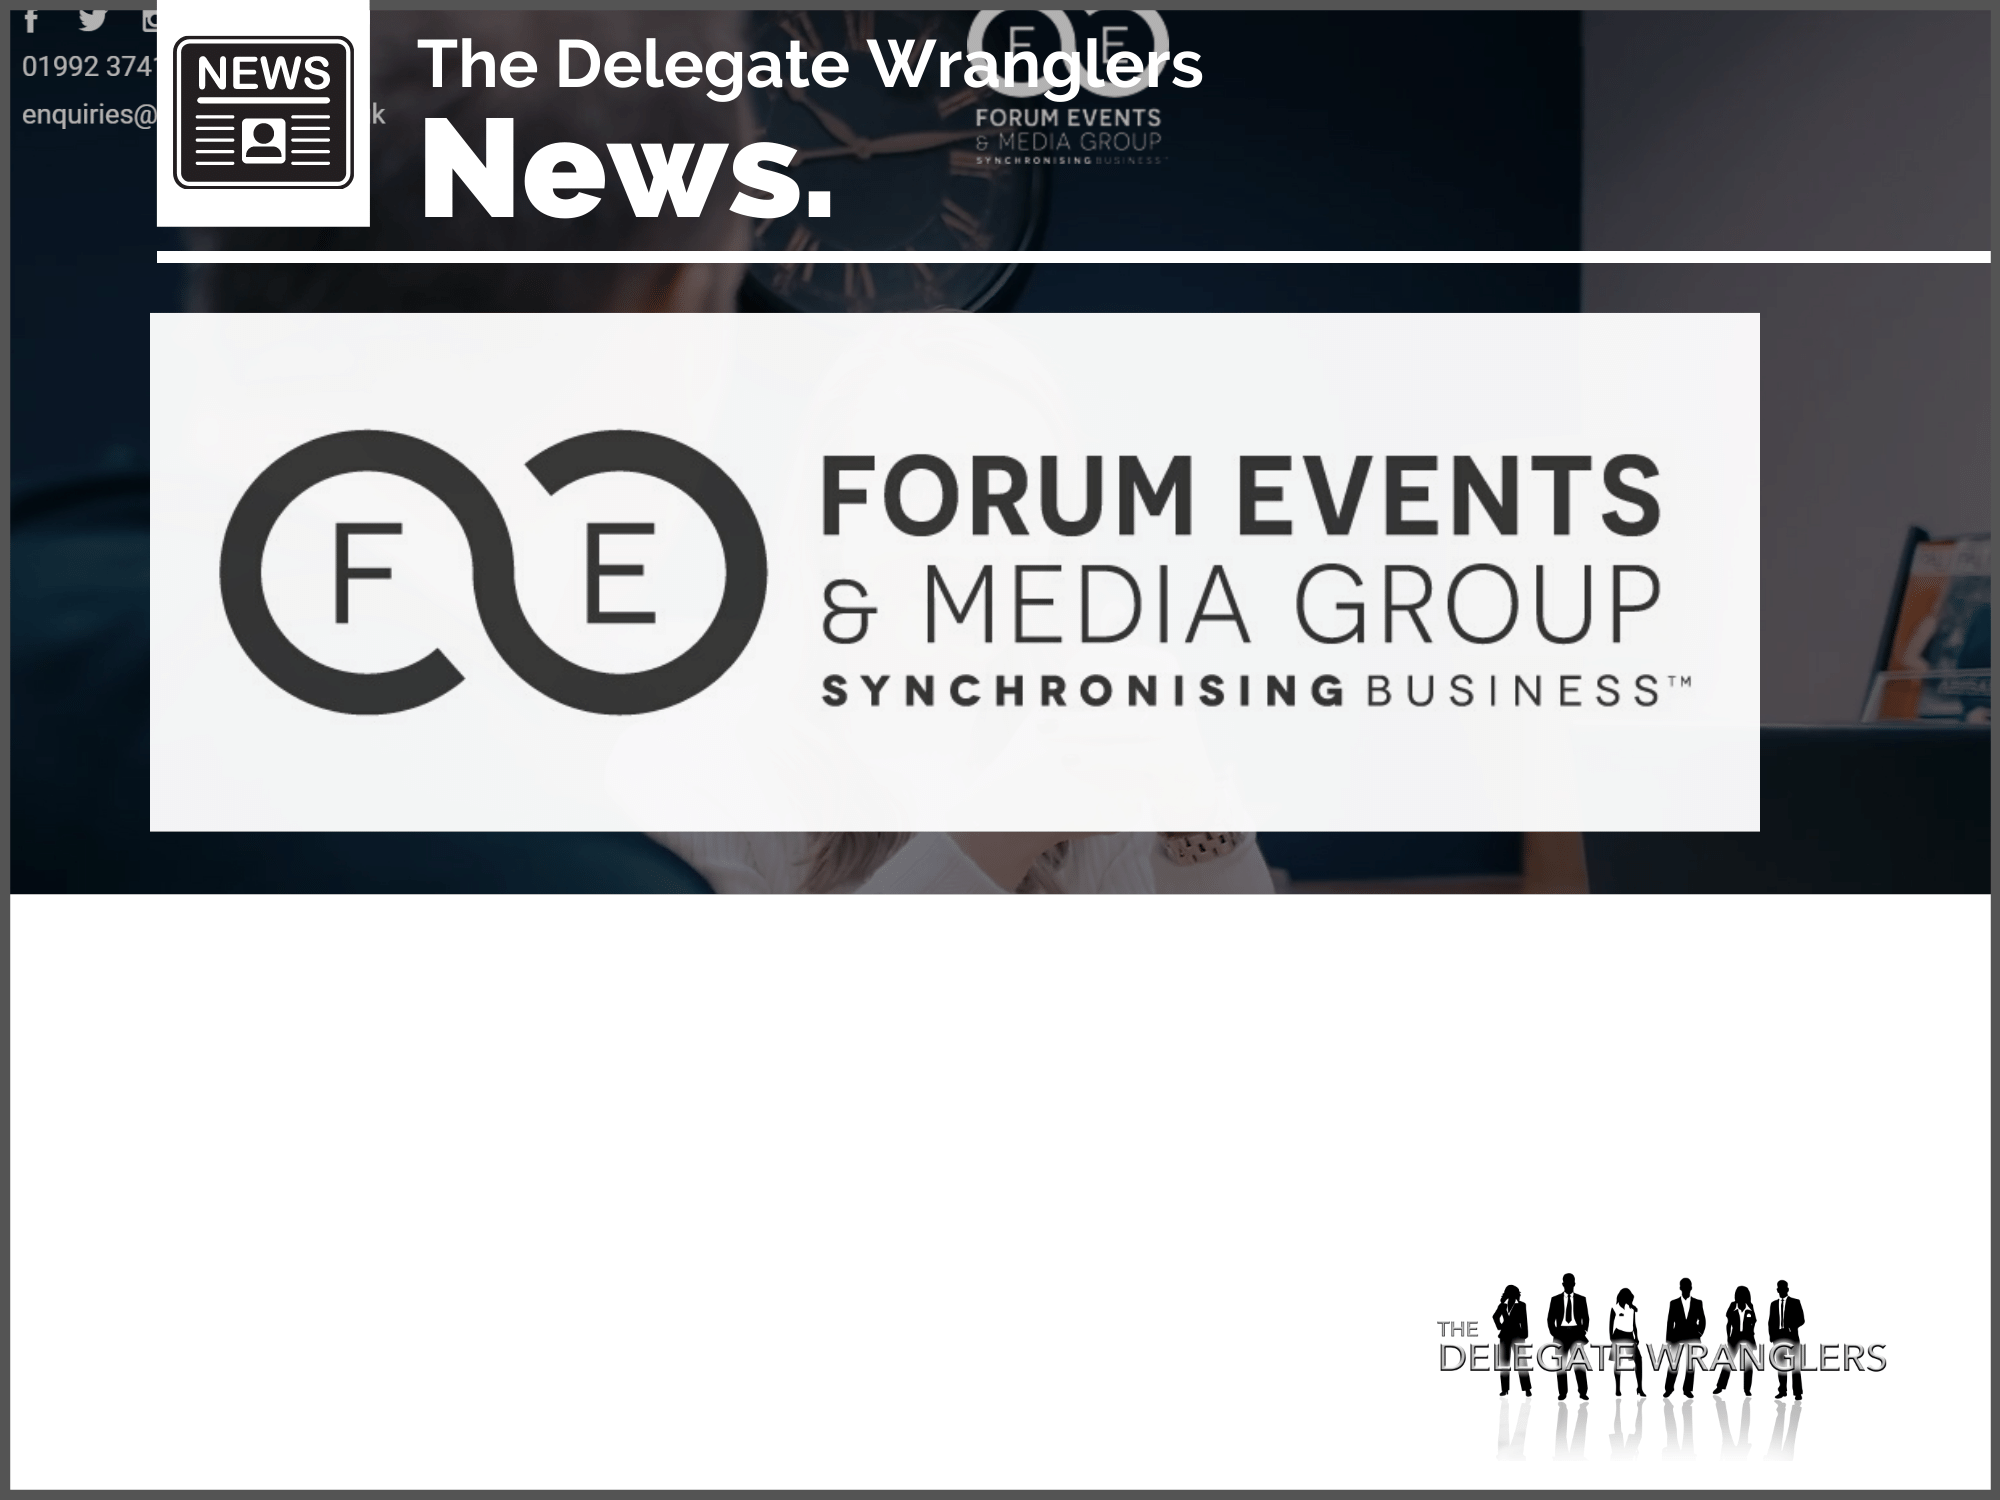 Forum Events & Media Group unveils business networking solution for the 'new normal'